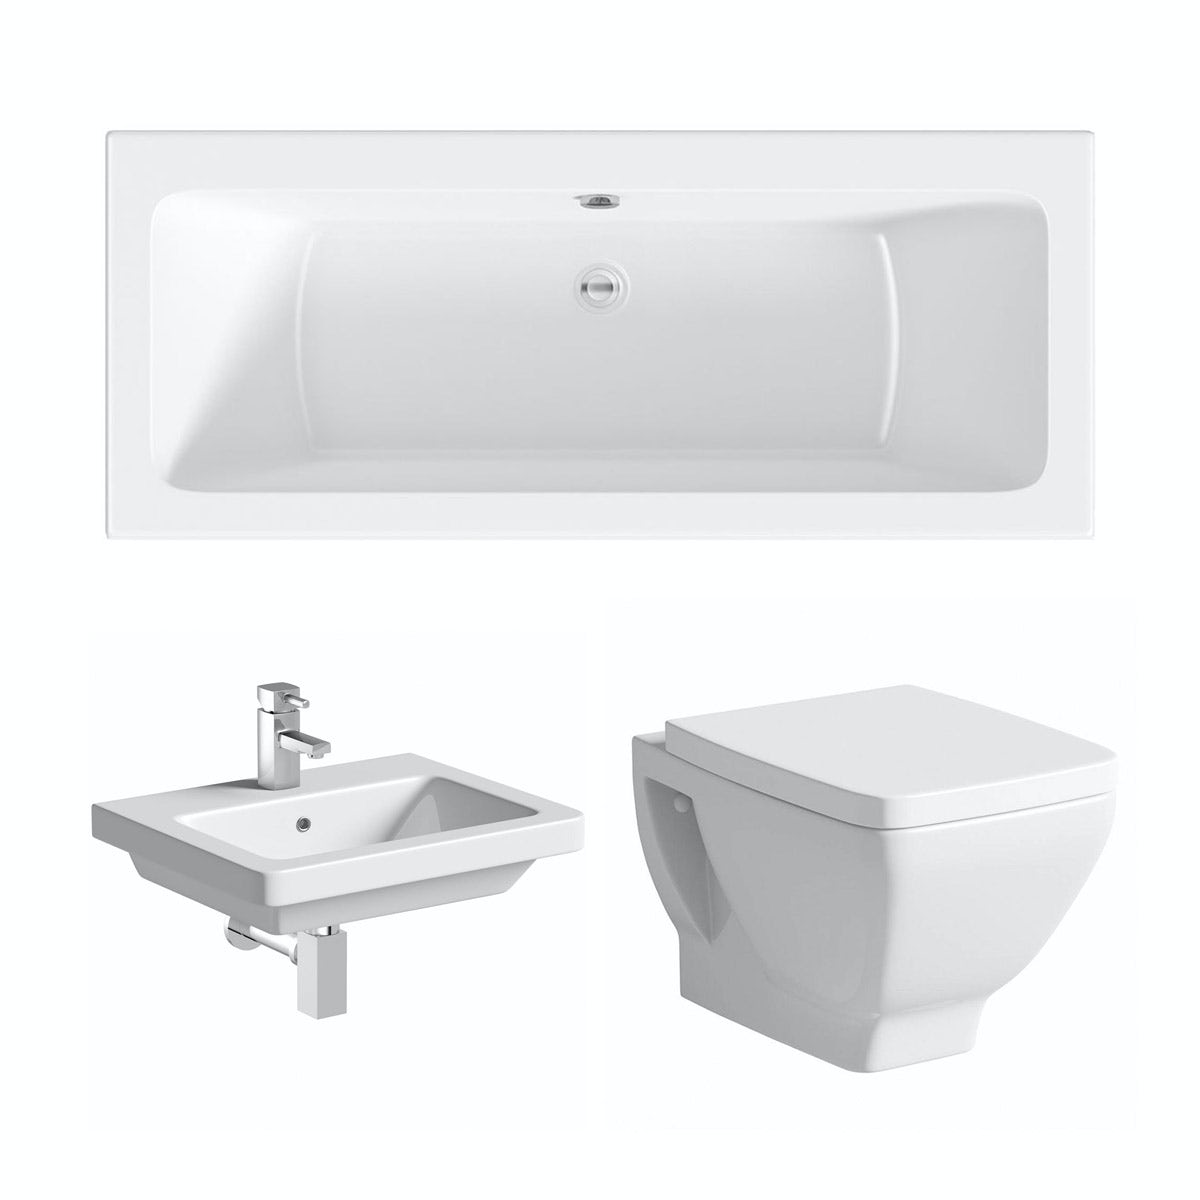 Mode Cooper straight double ended bath suite